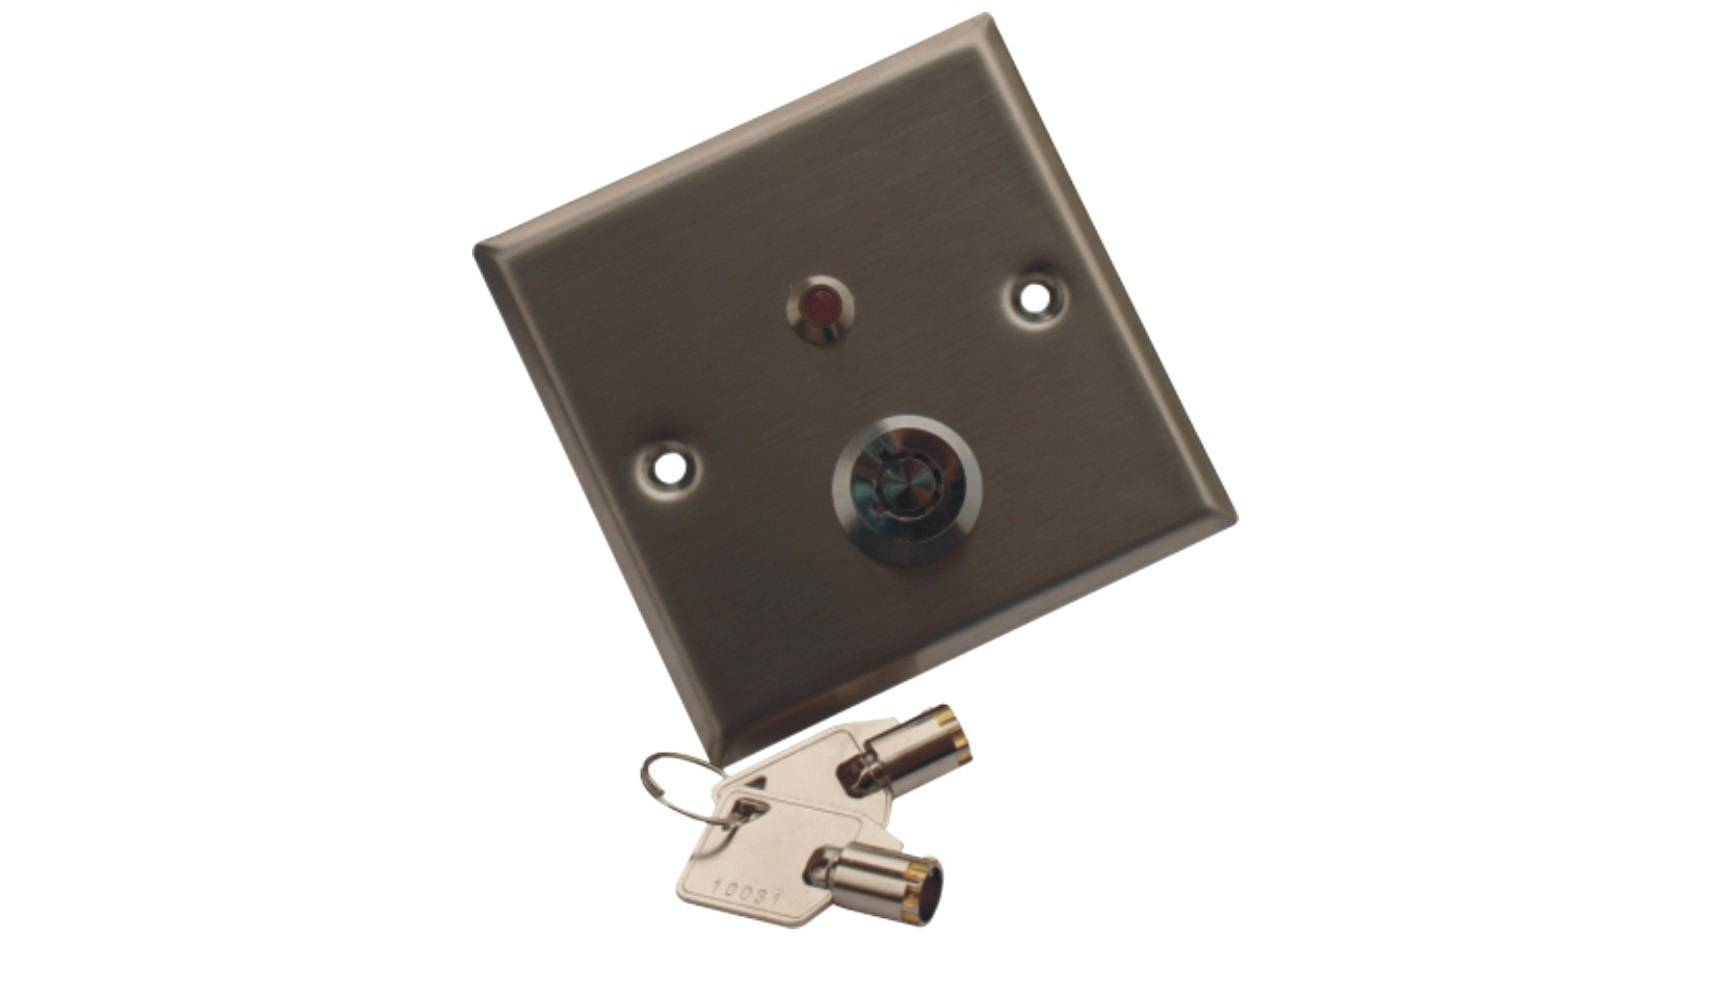 Release Button W/Same Key&LED of access control